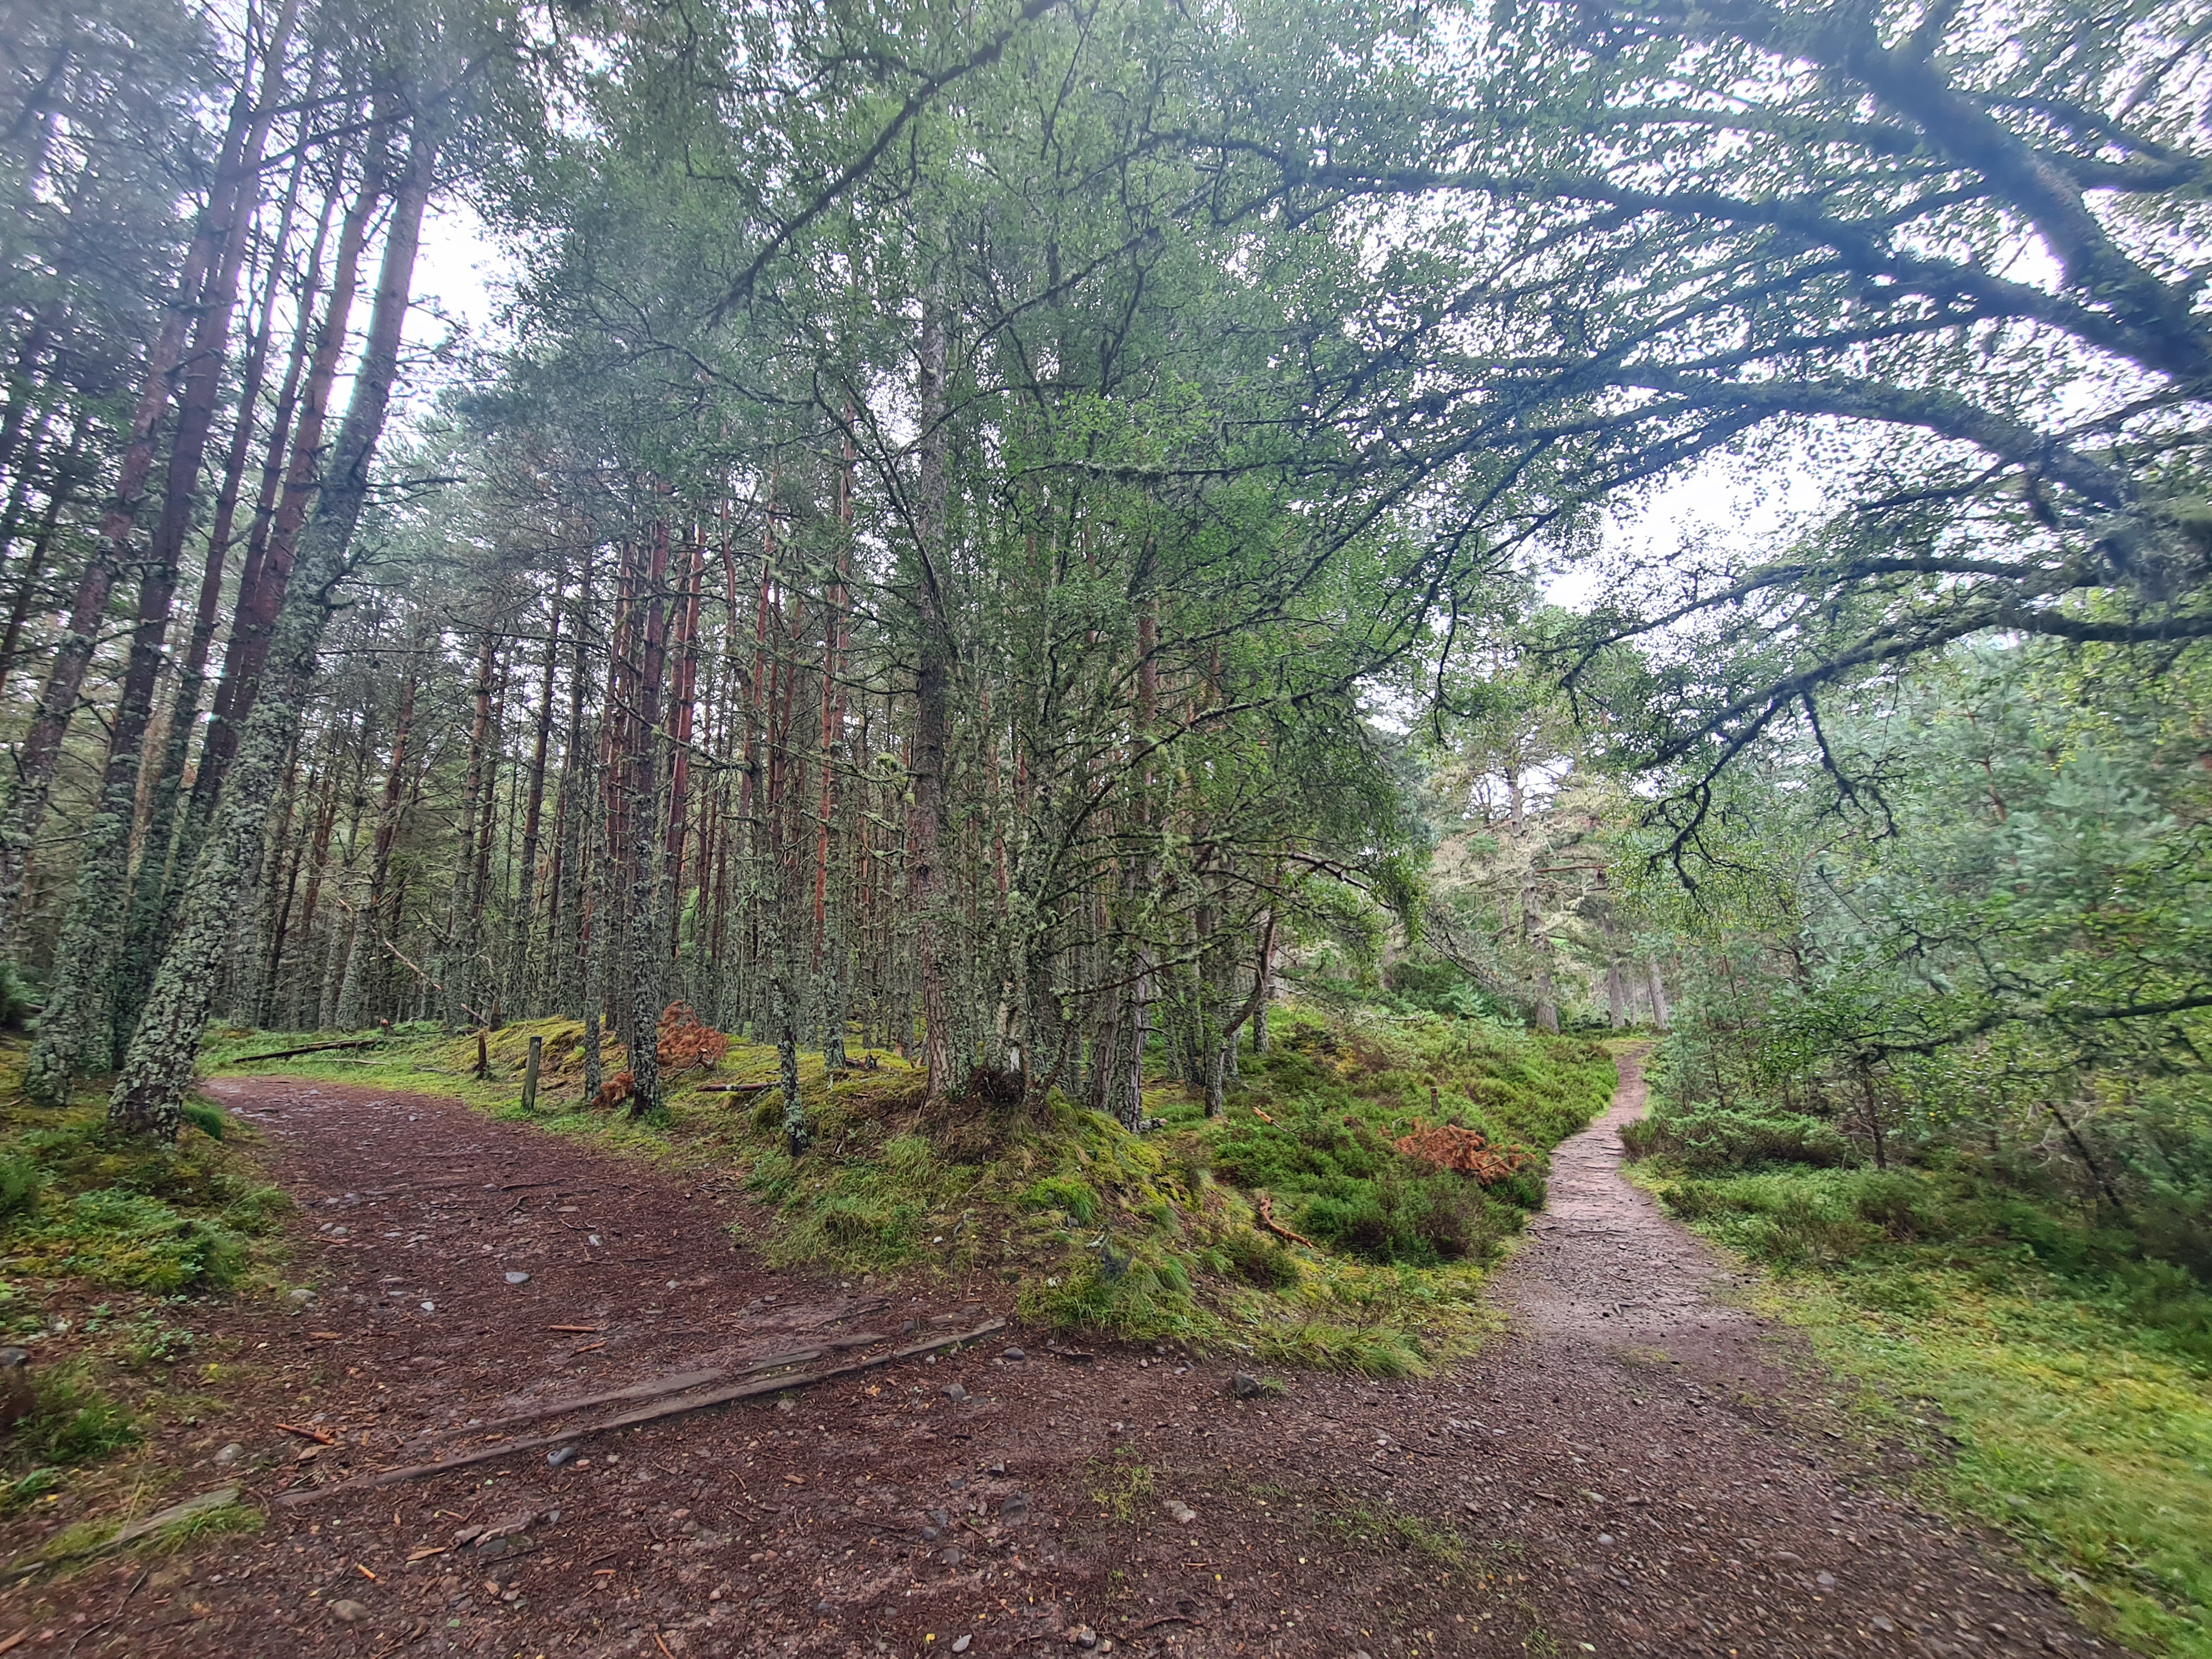 Anagach Wood- Red Trail (on right) joins Speyside Way (on left)